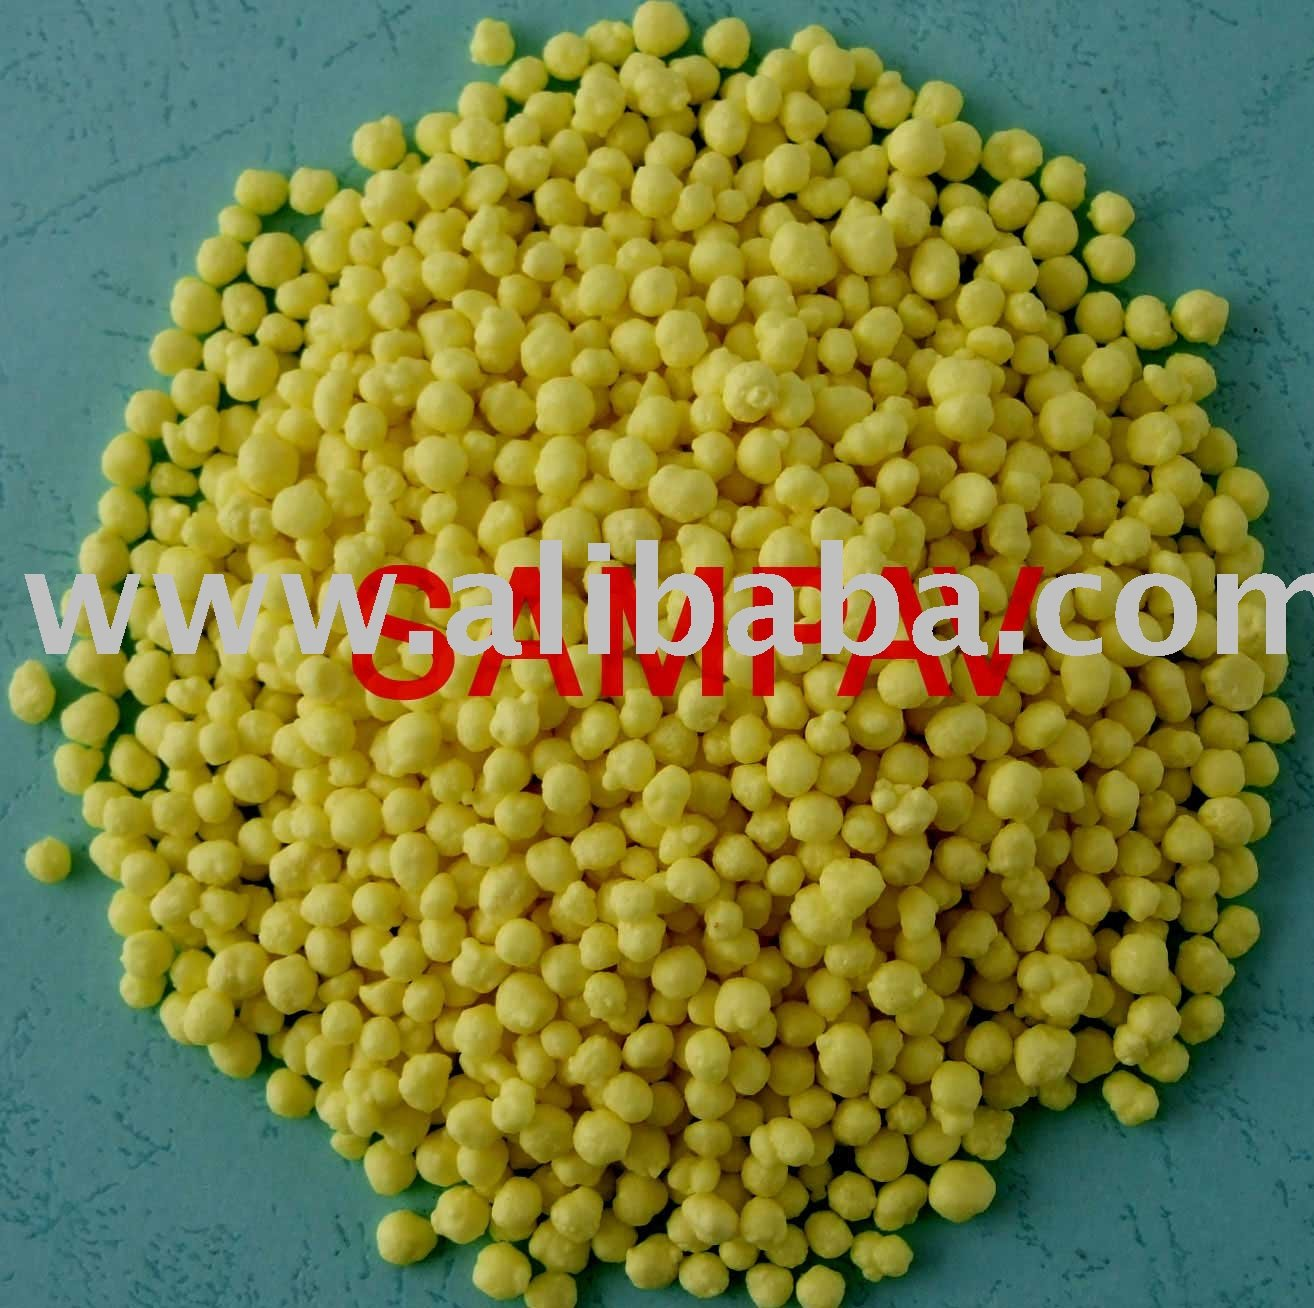 Granular Sulphur 99. 98% Purity